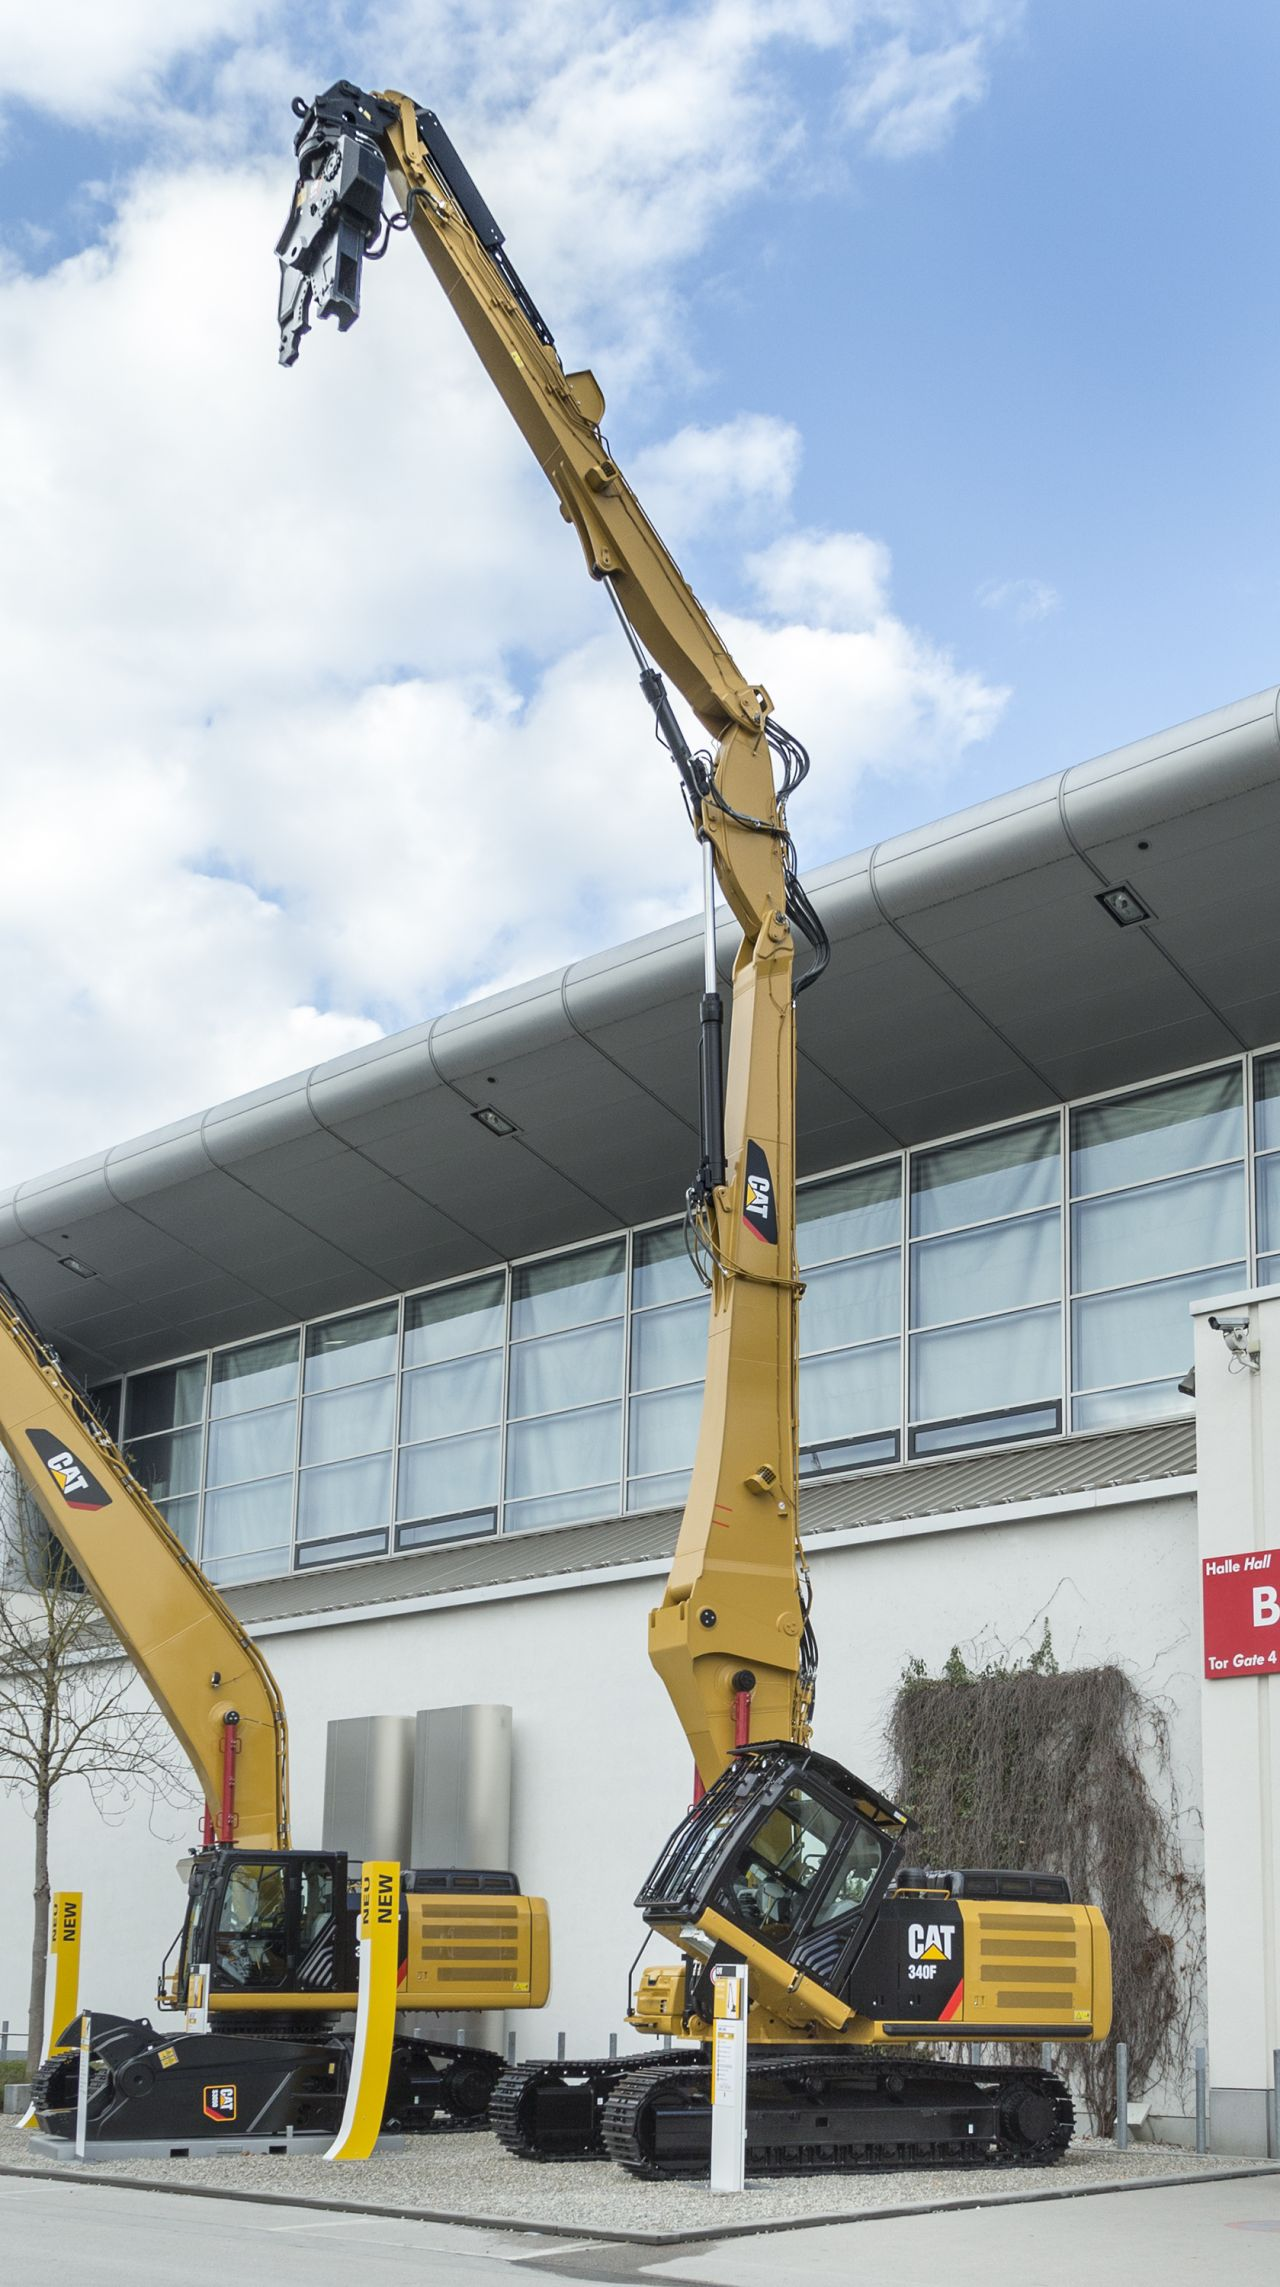 New High Reach Demolition Excavator From Cat Unveiled At Bauma Waste Management World